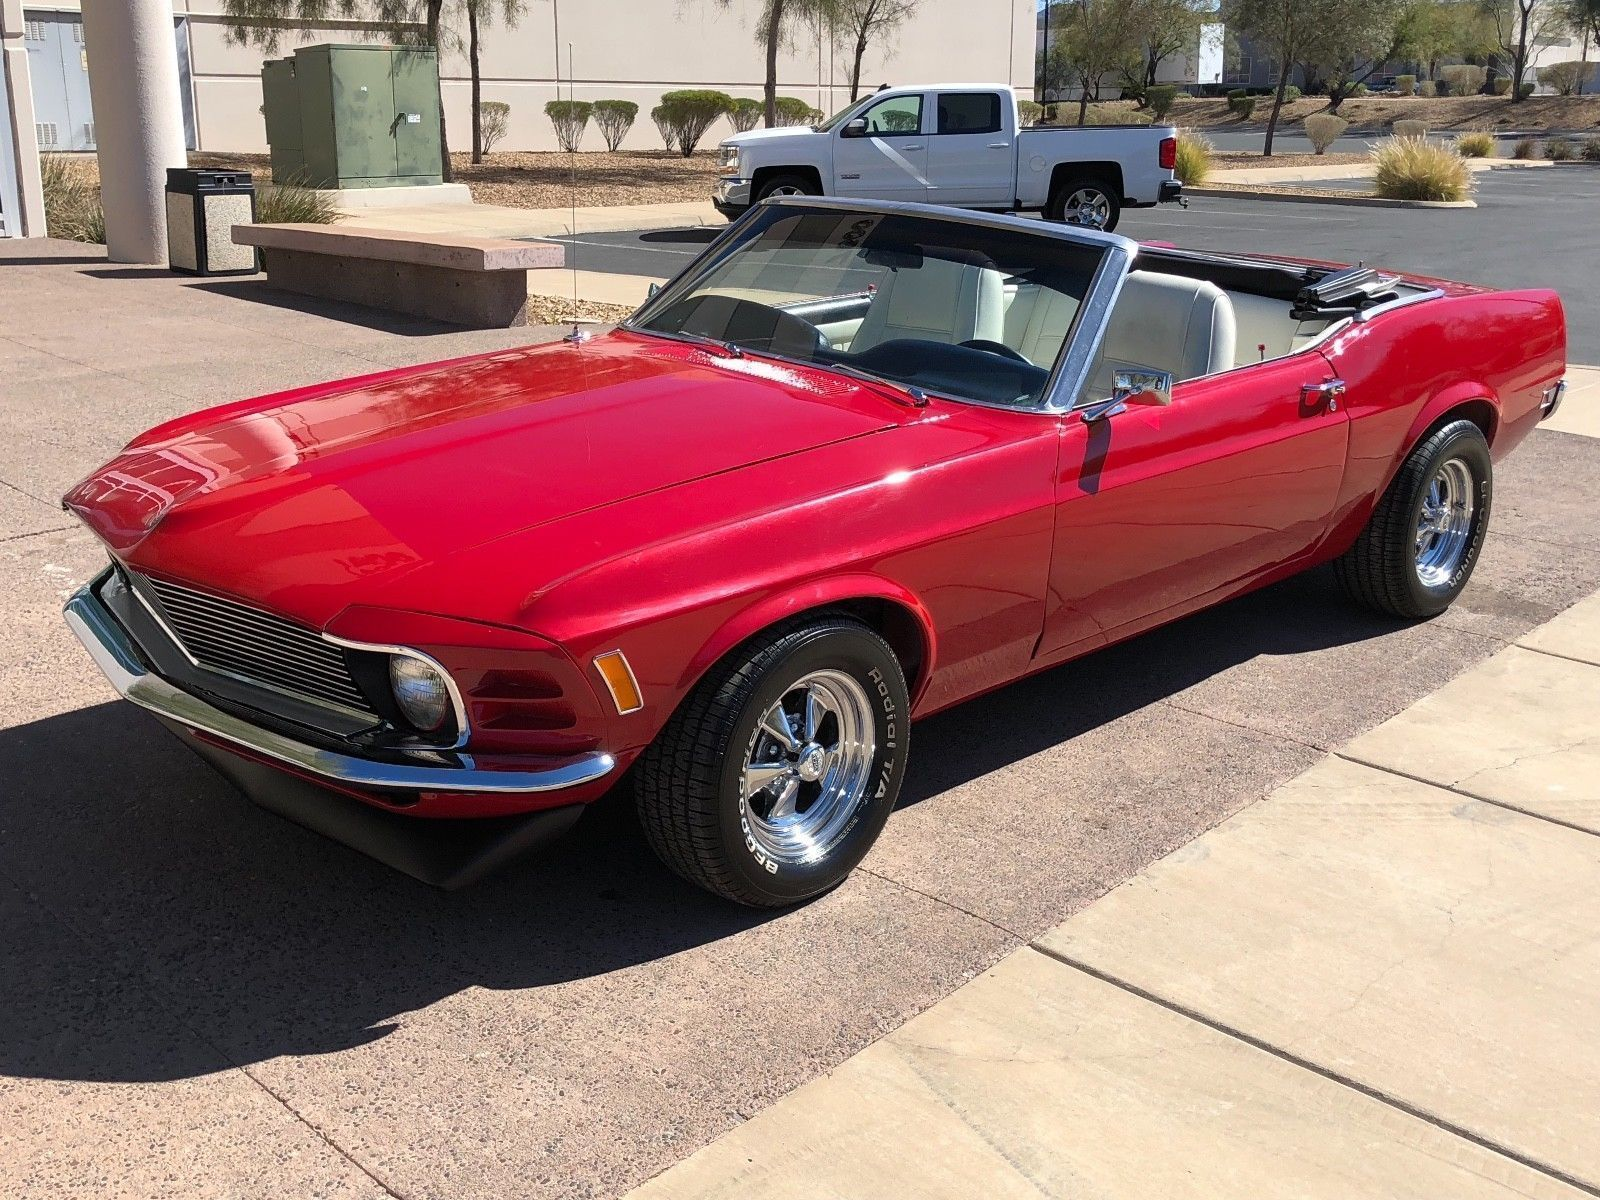 eBay: 1970 Ford Mustang Convertible 1970 FOR MUSTANG CONVERTIBLE 302 ...